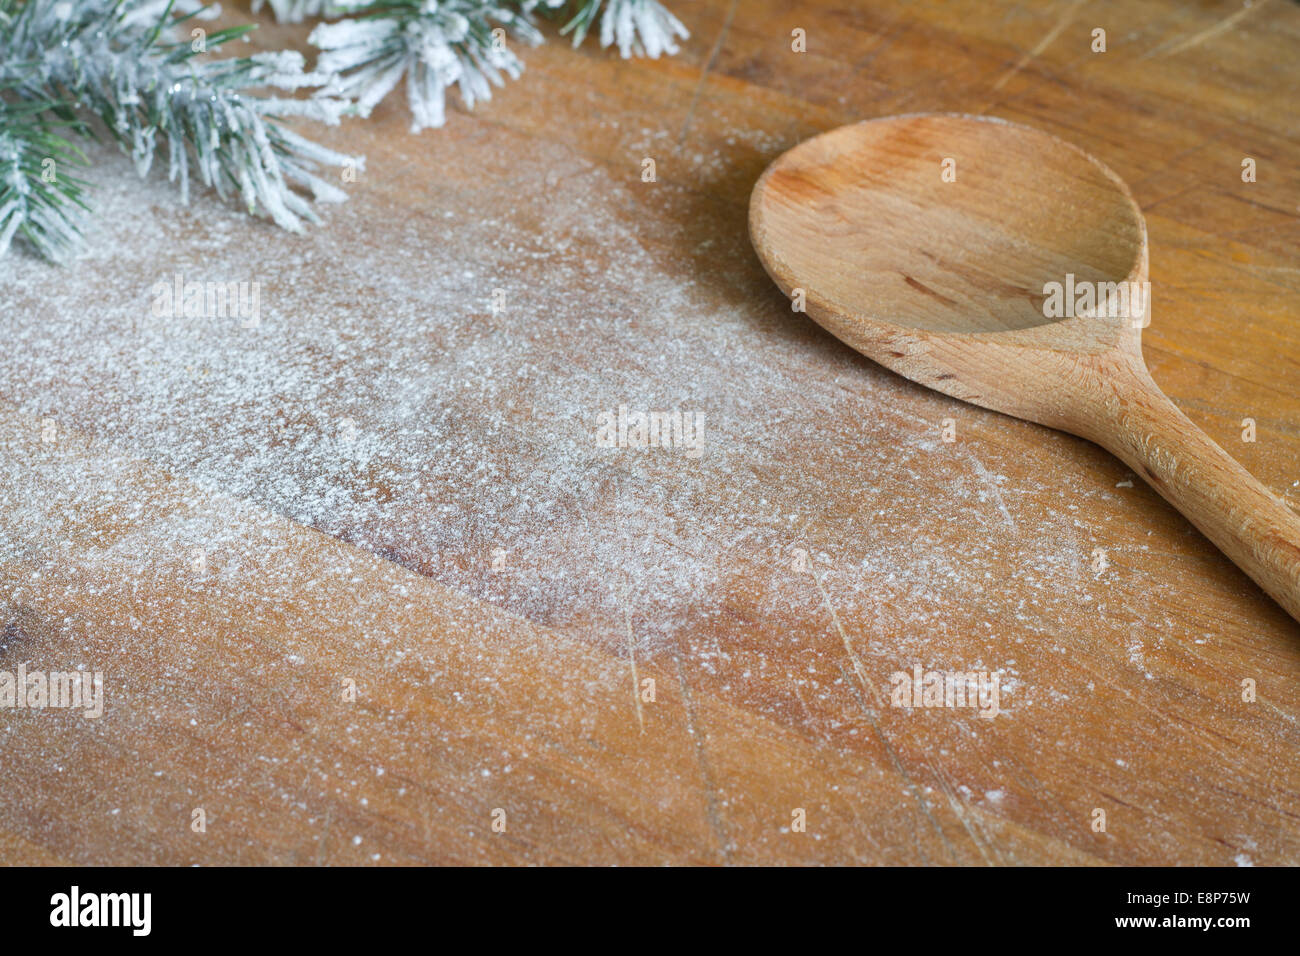 Abstract christmas food backing and cooking background concept - Stock Image